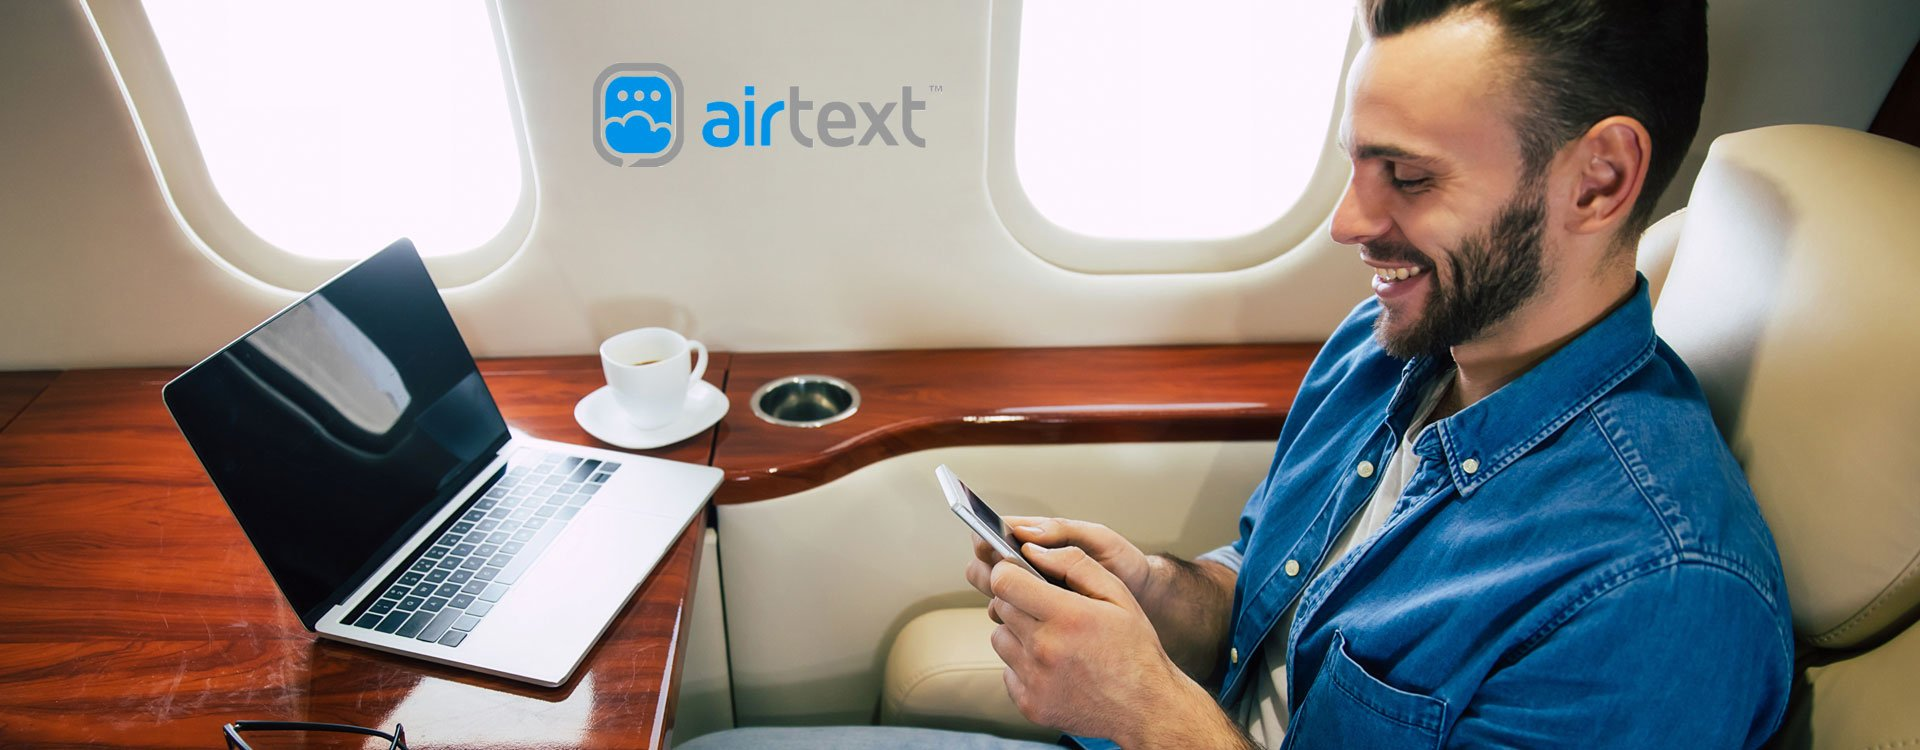 Airtext Plus - Email, Text and Phone